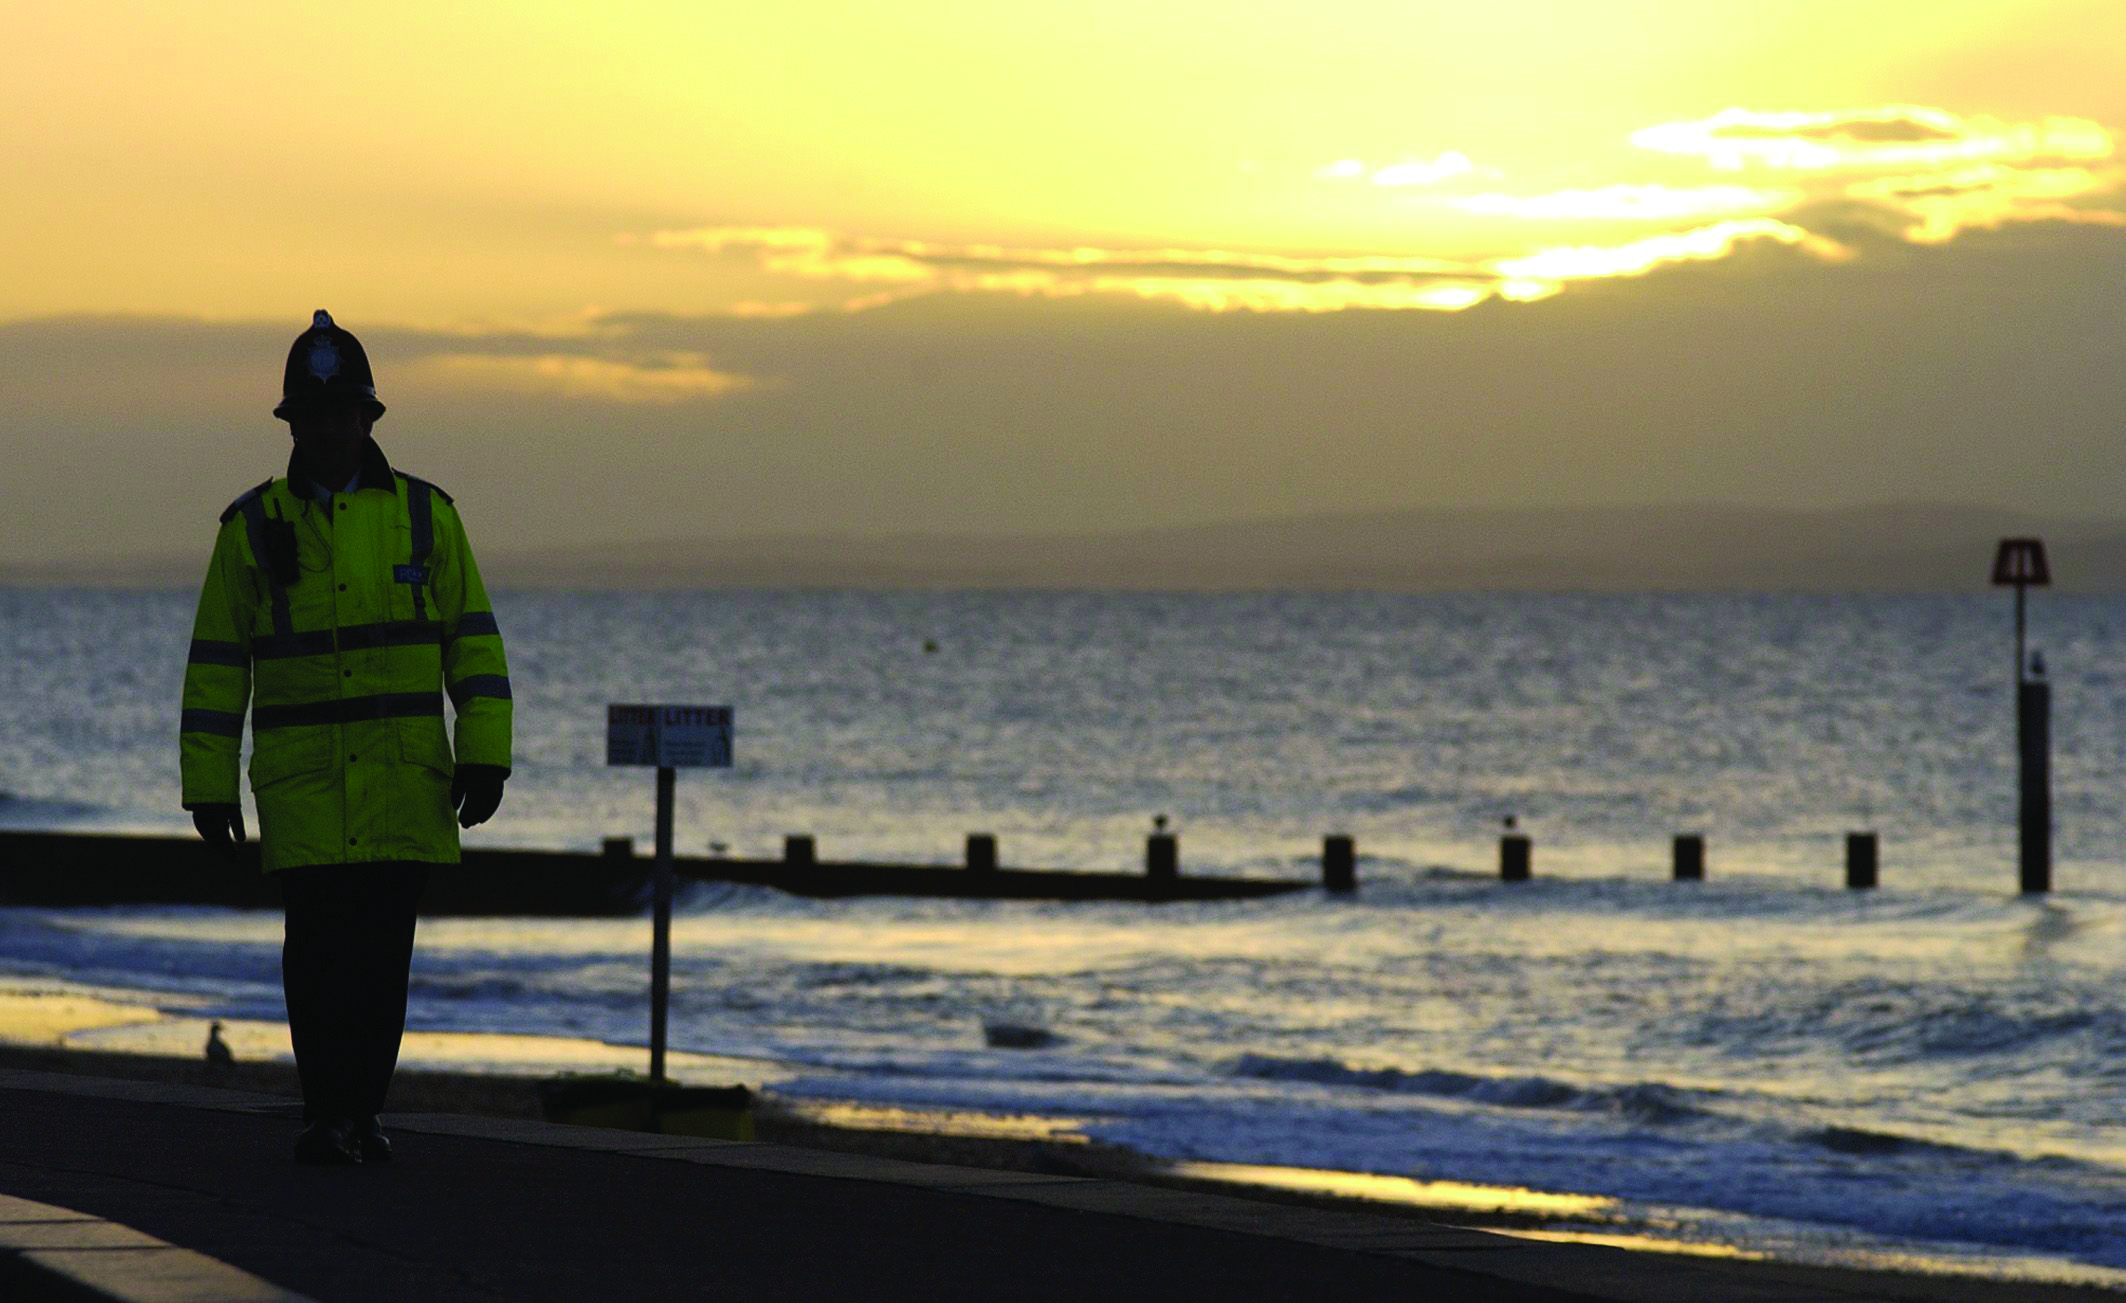 Police officer walking down a beach